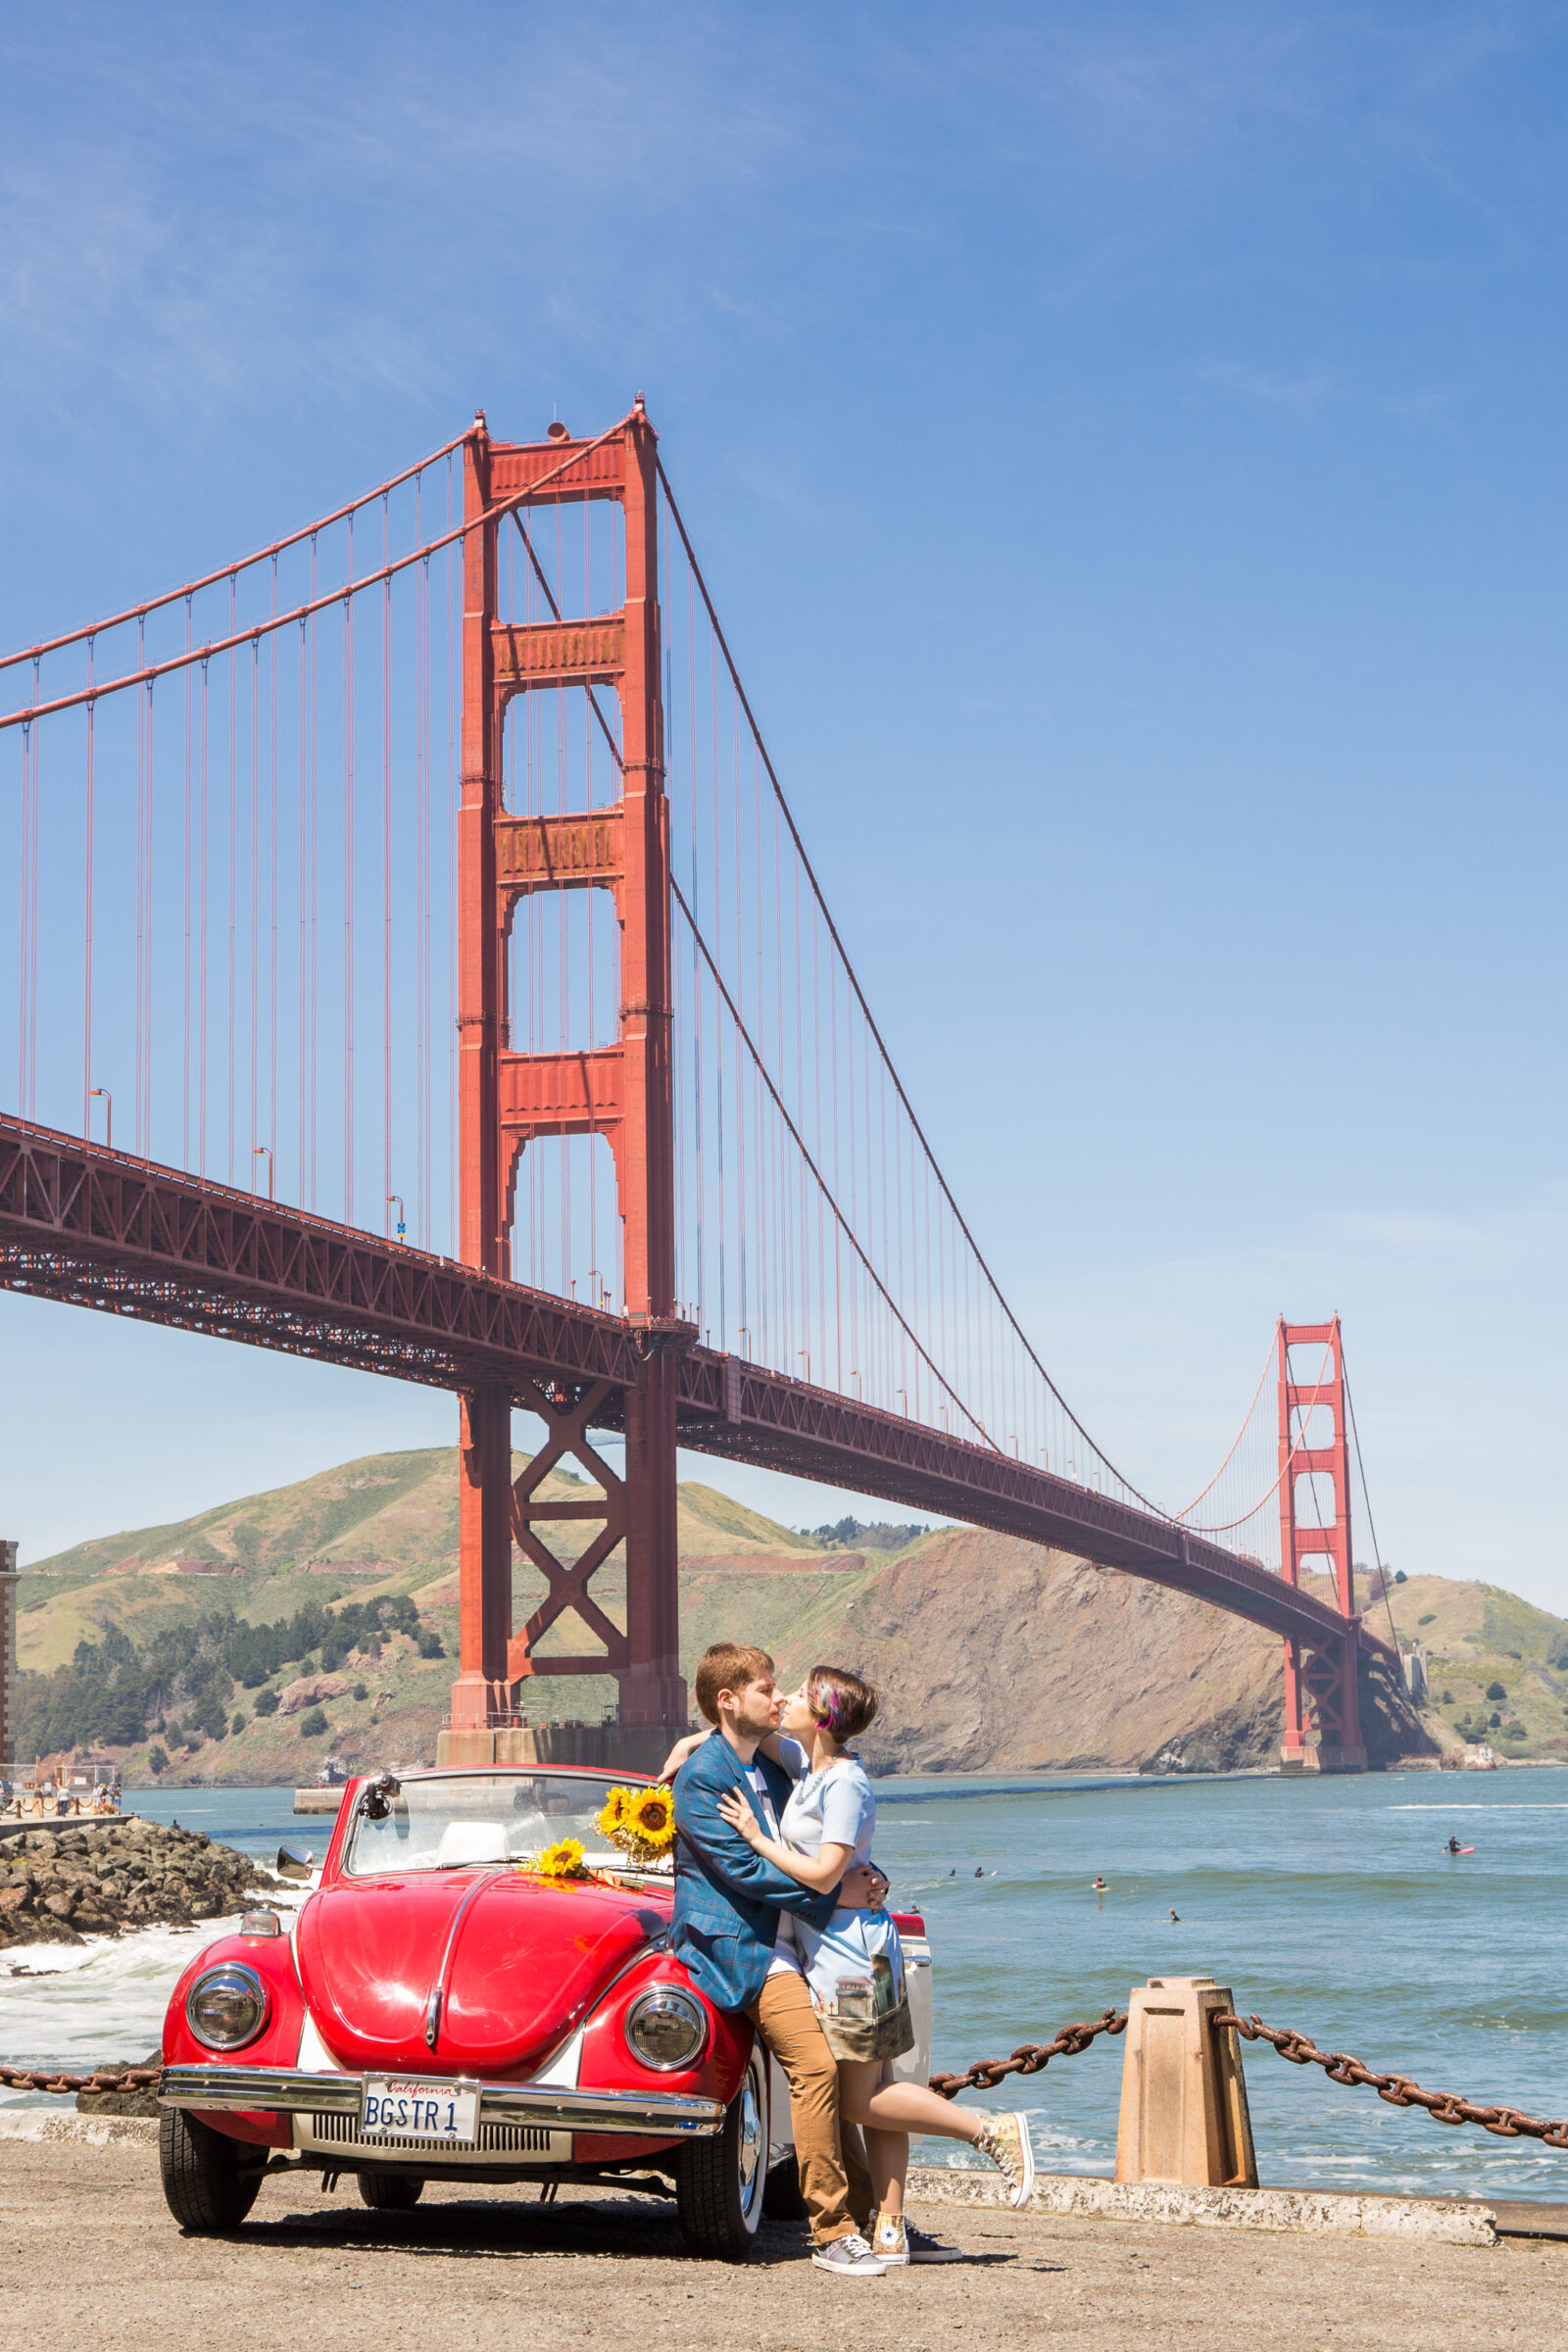 A photo of a couple with an old Volkswagen Bug convertible under the Golden Gate Bridge.